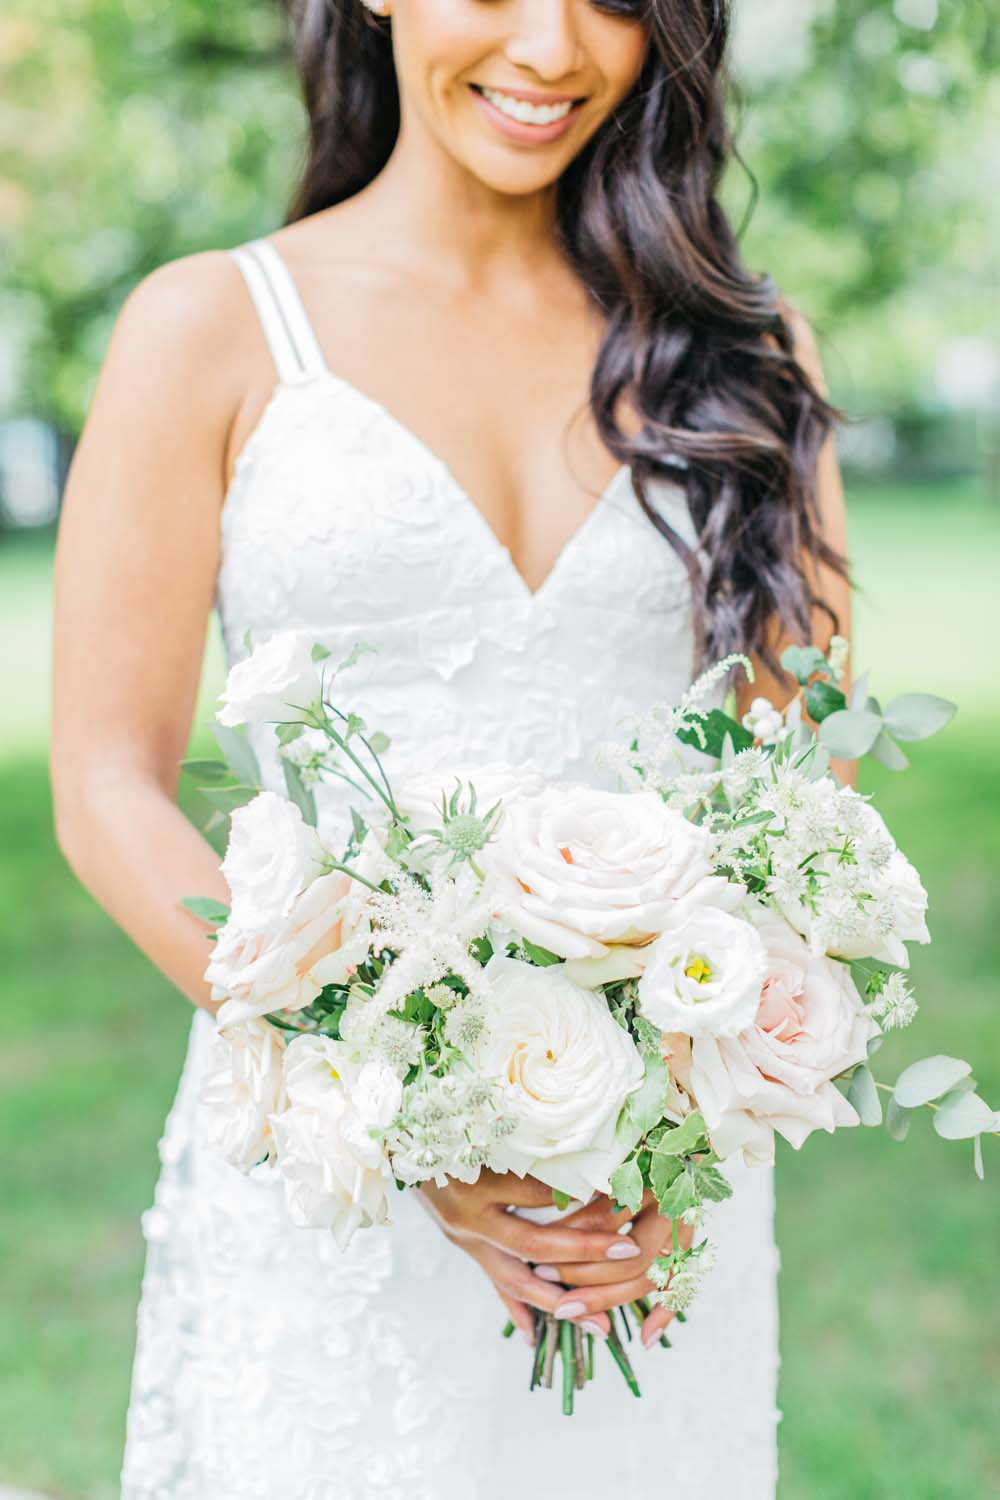 A Bright and Airy September Wedding in Toronto, Ontario - Bride's Bouquet